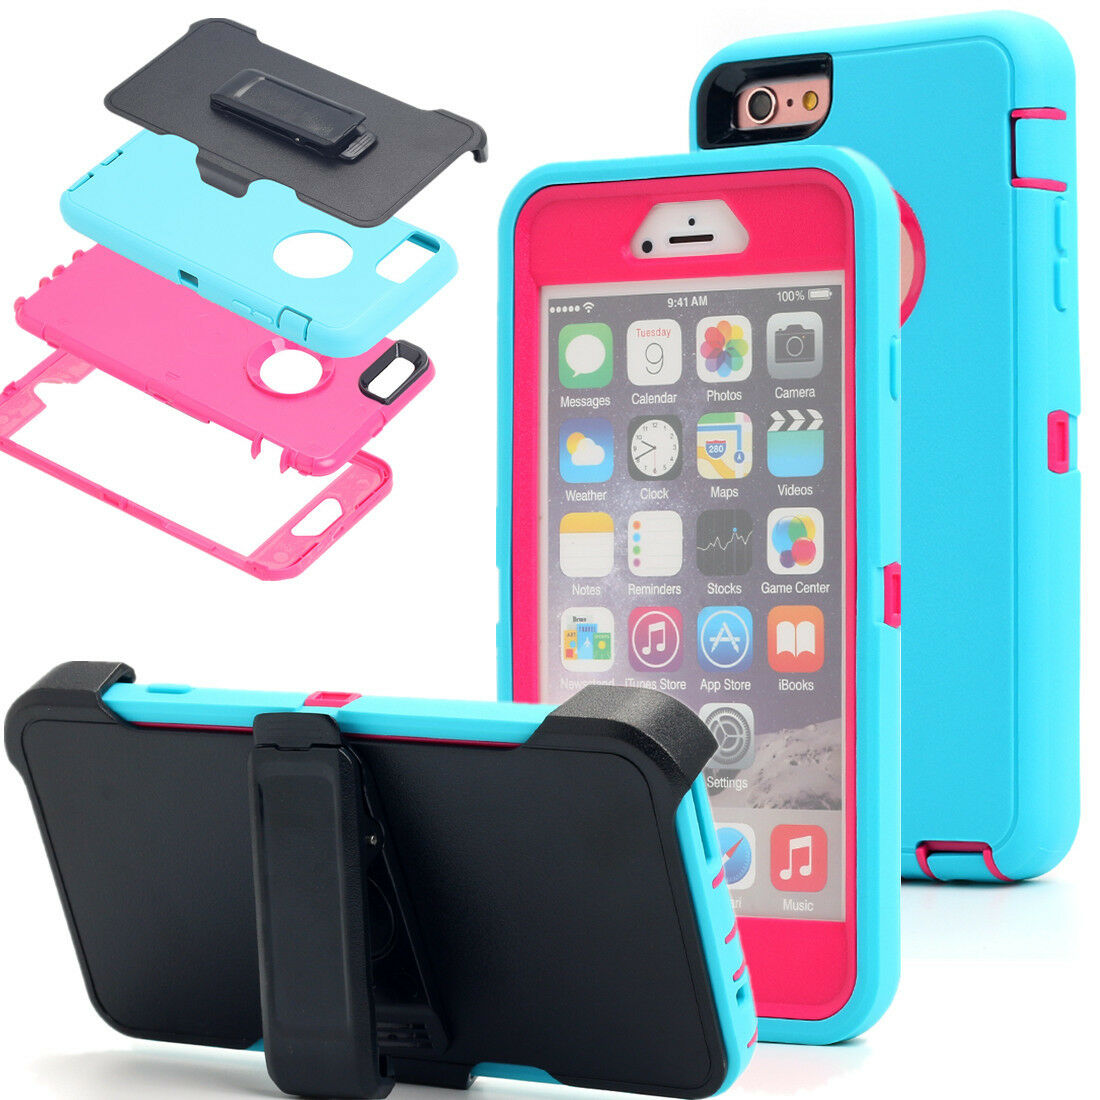 waterproof case for iphone 6 plus with belt clip and vibrant